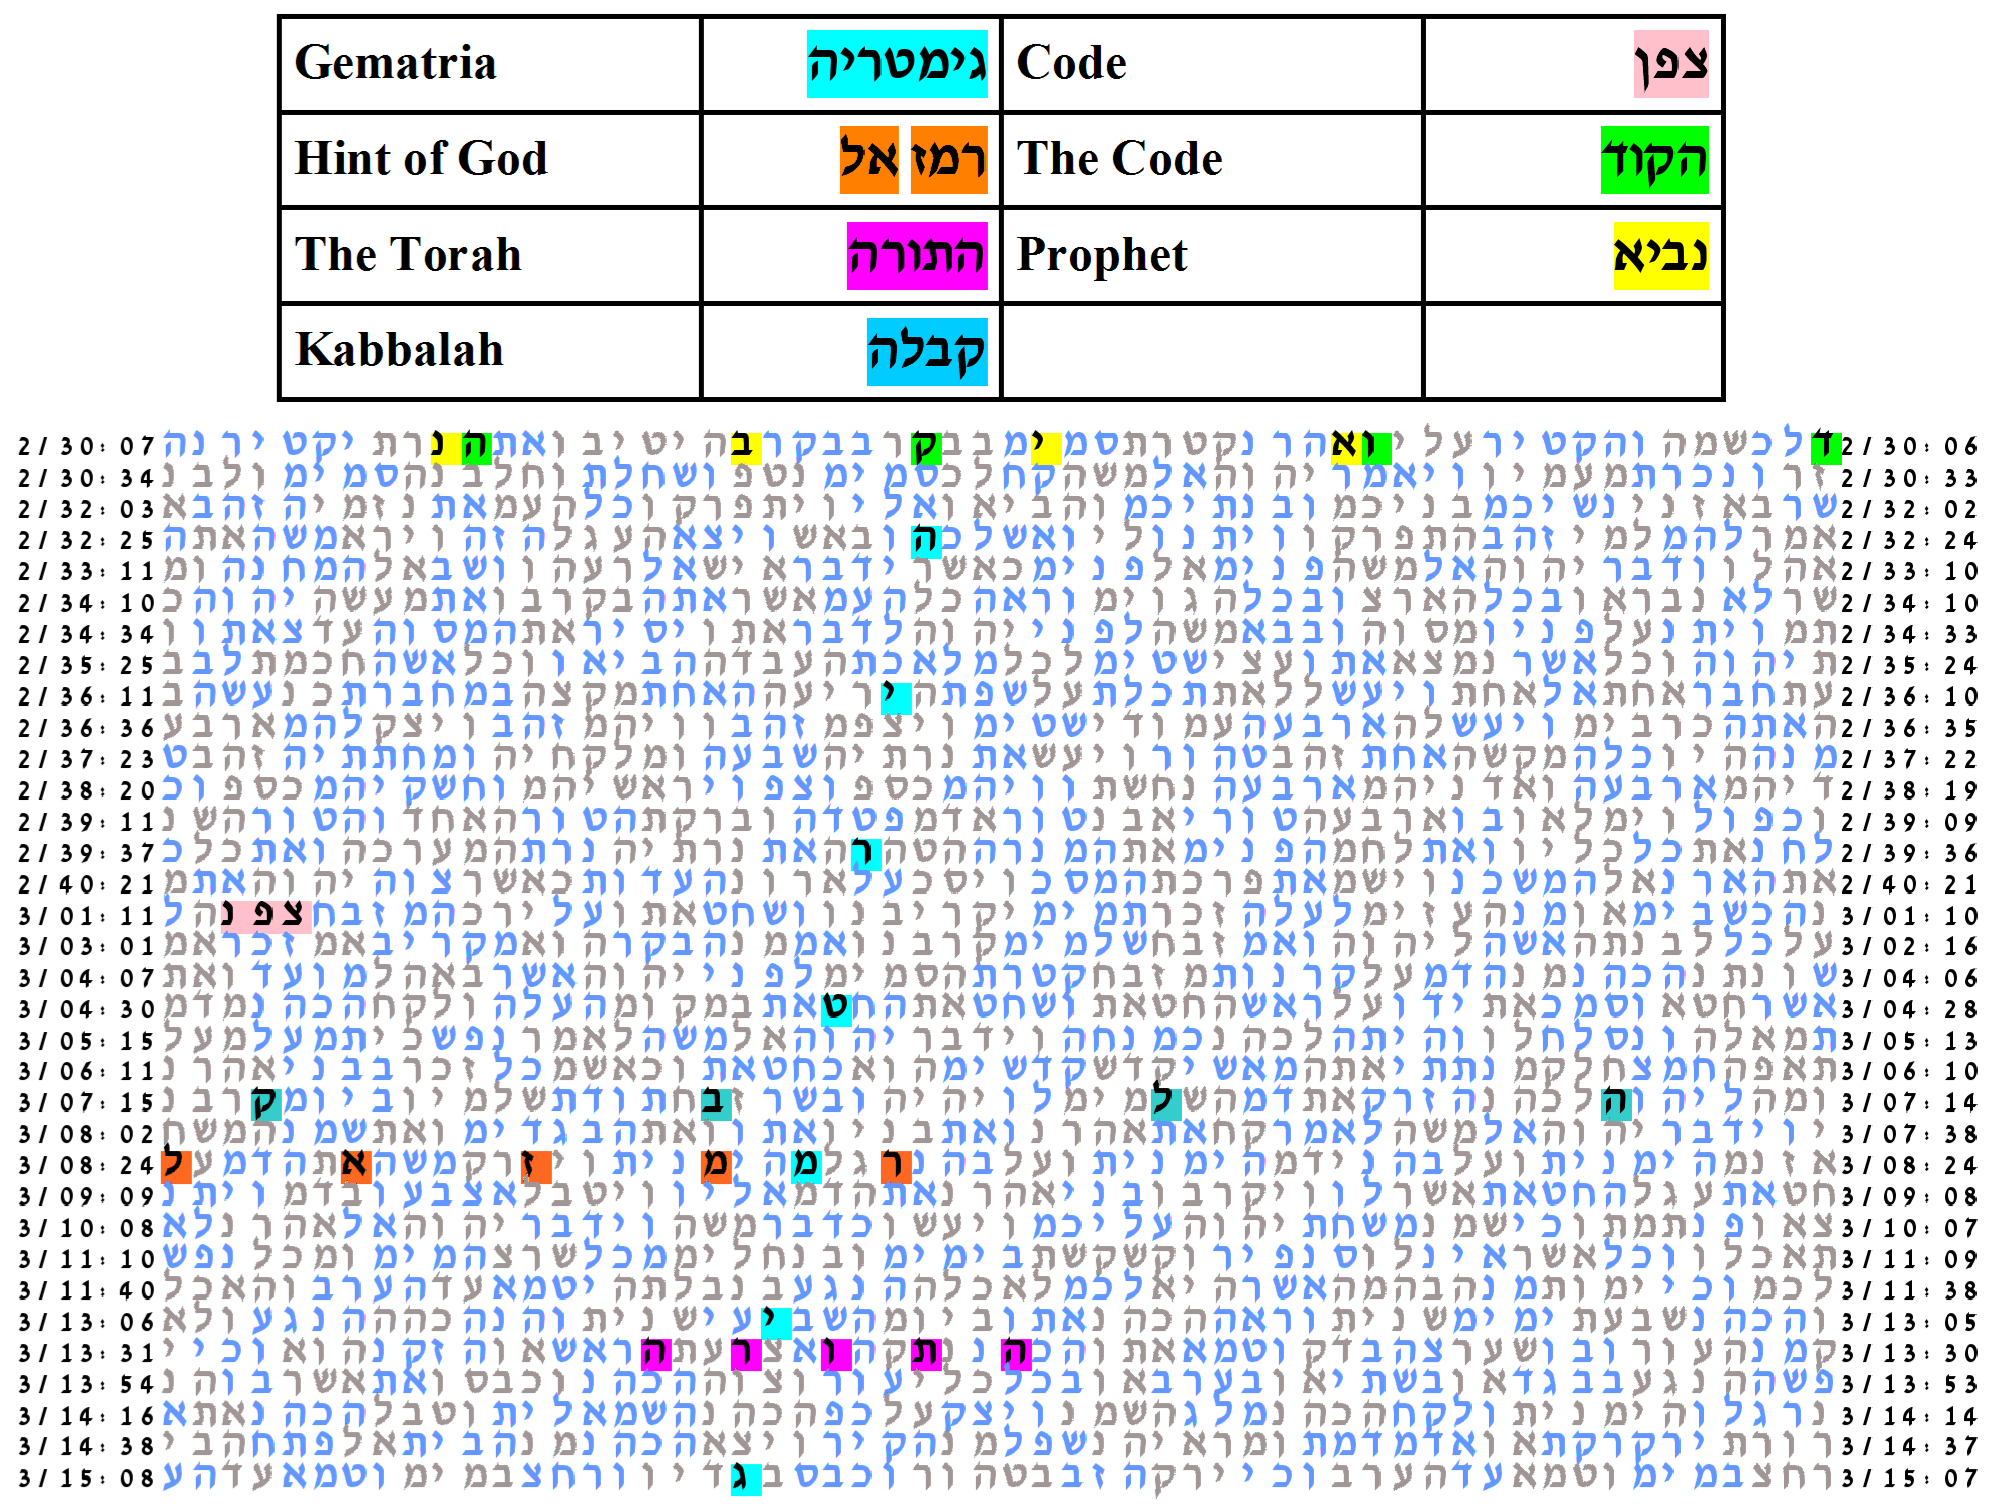 Table Of Key Words For The Gematria Experiment